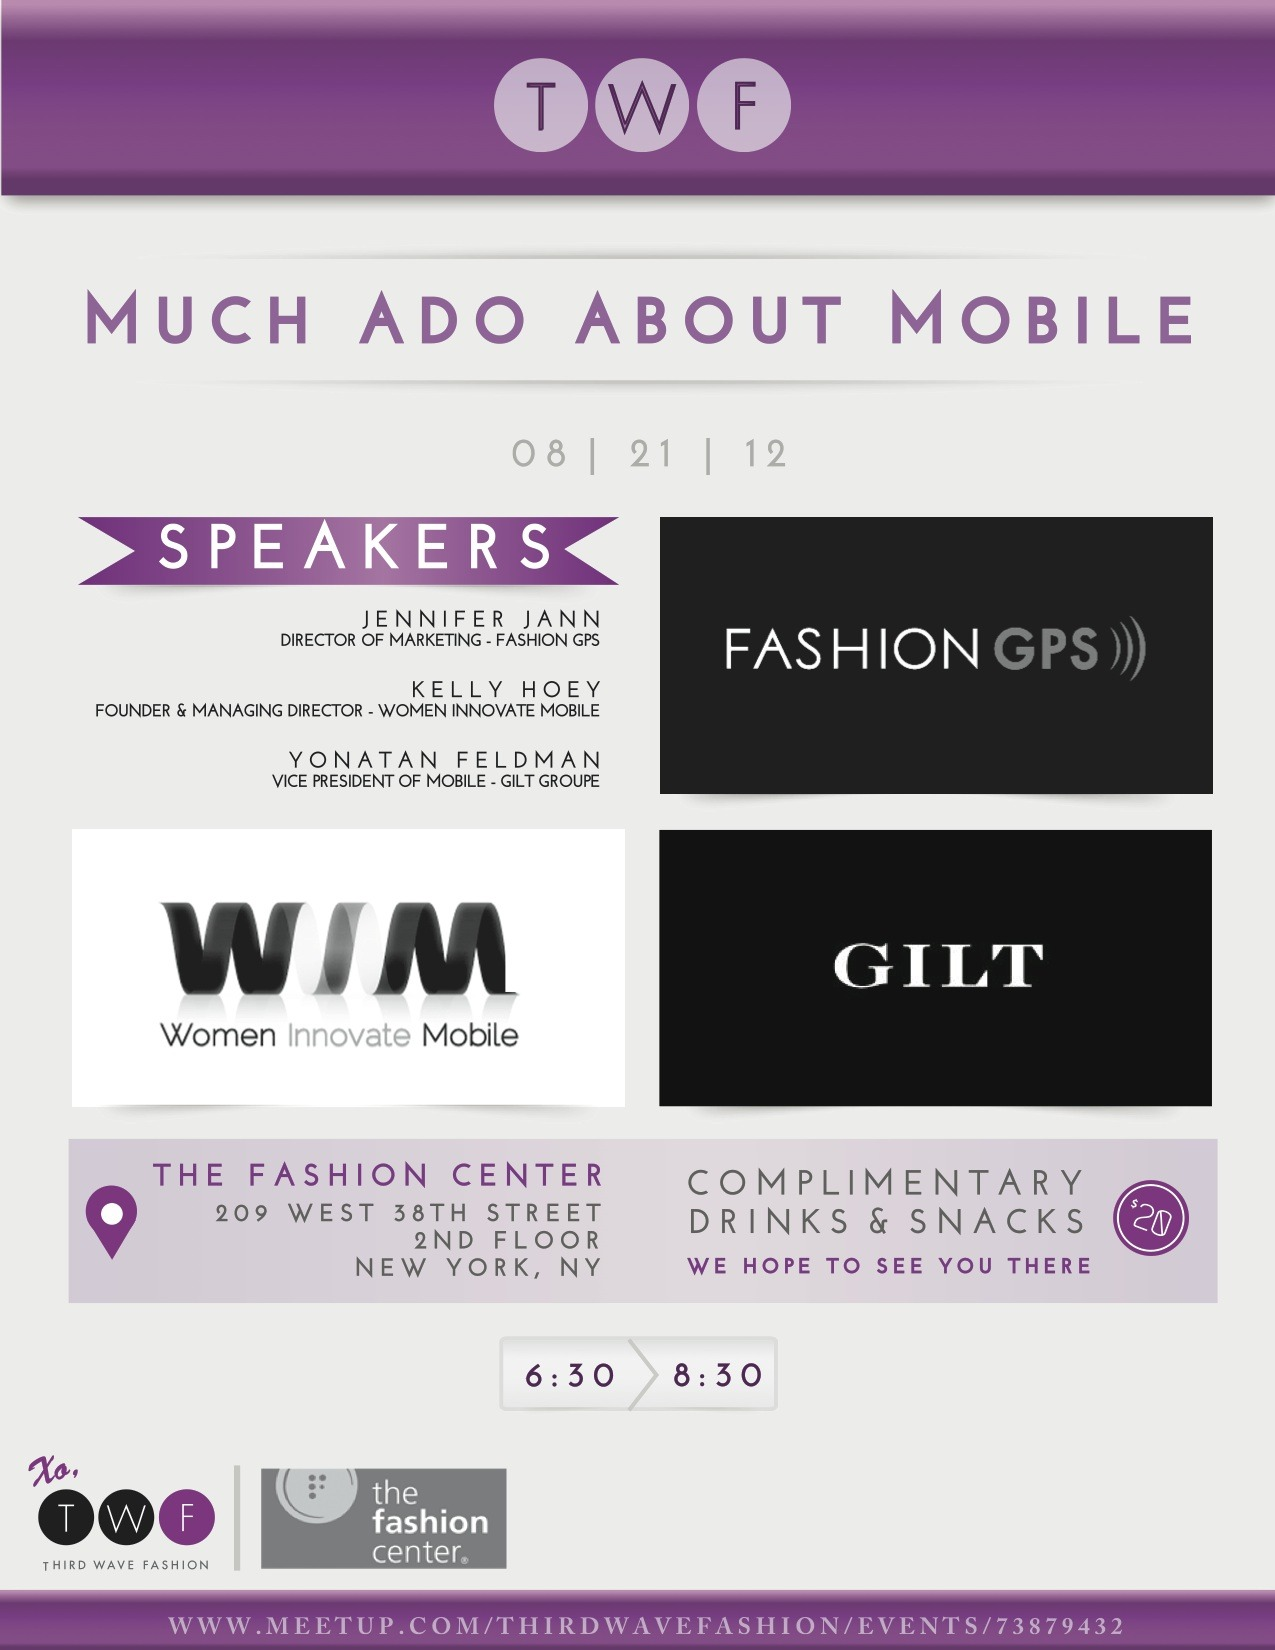 Tonight's the night! Check out our meetup page to RSVP for our mobile event tonight. We hope to see you there! XO, TWF